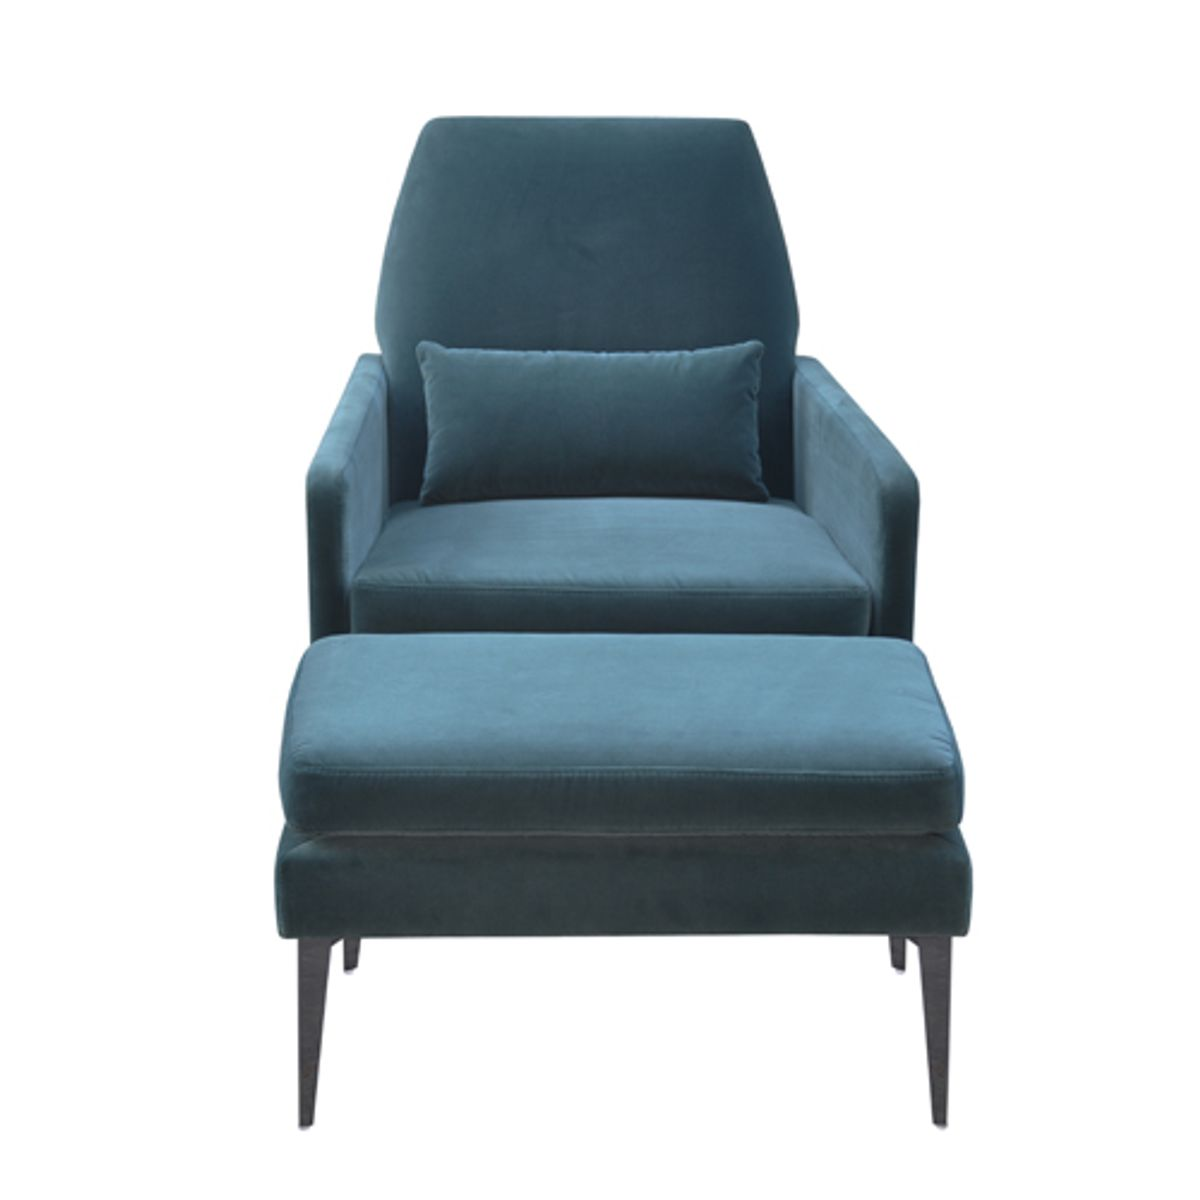 fauteuil velours de coton et ottoman vaugirard bleu de prusse decoclico. Black Bedroom Furniture Sets. Home Design Ideas